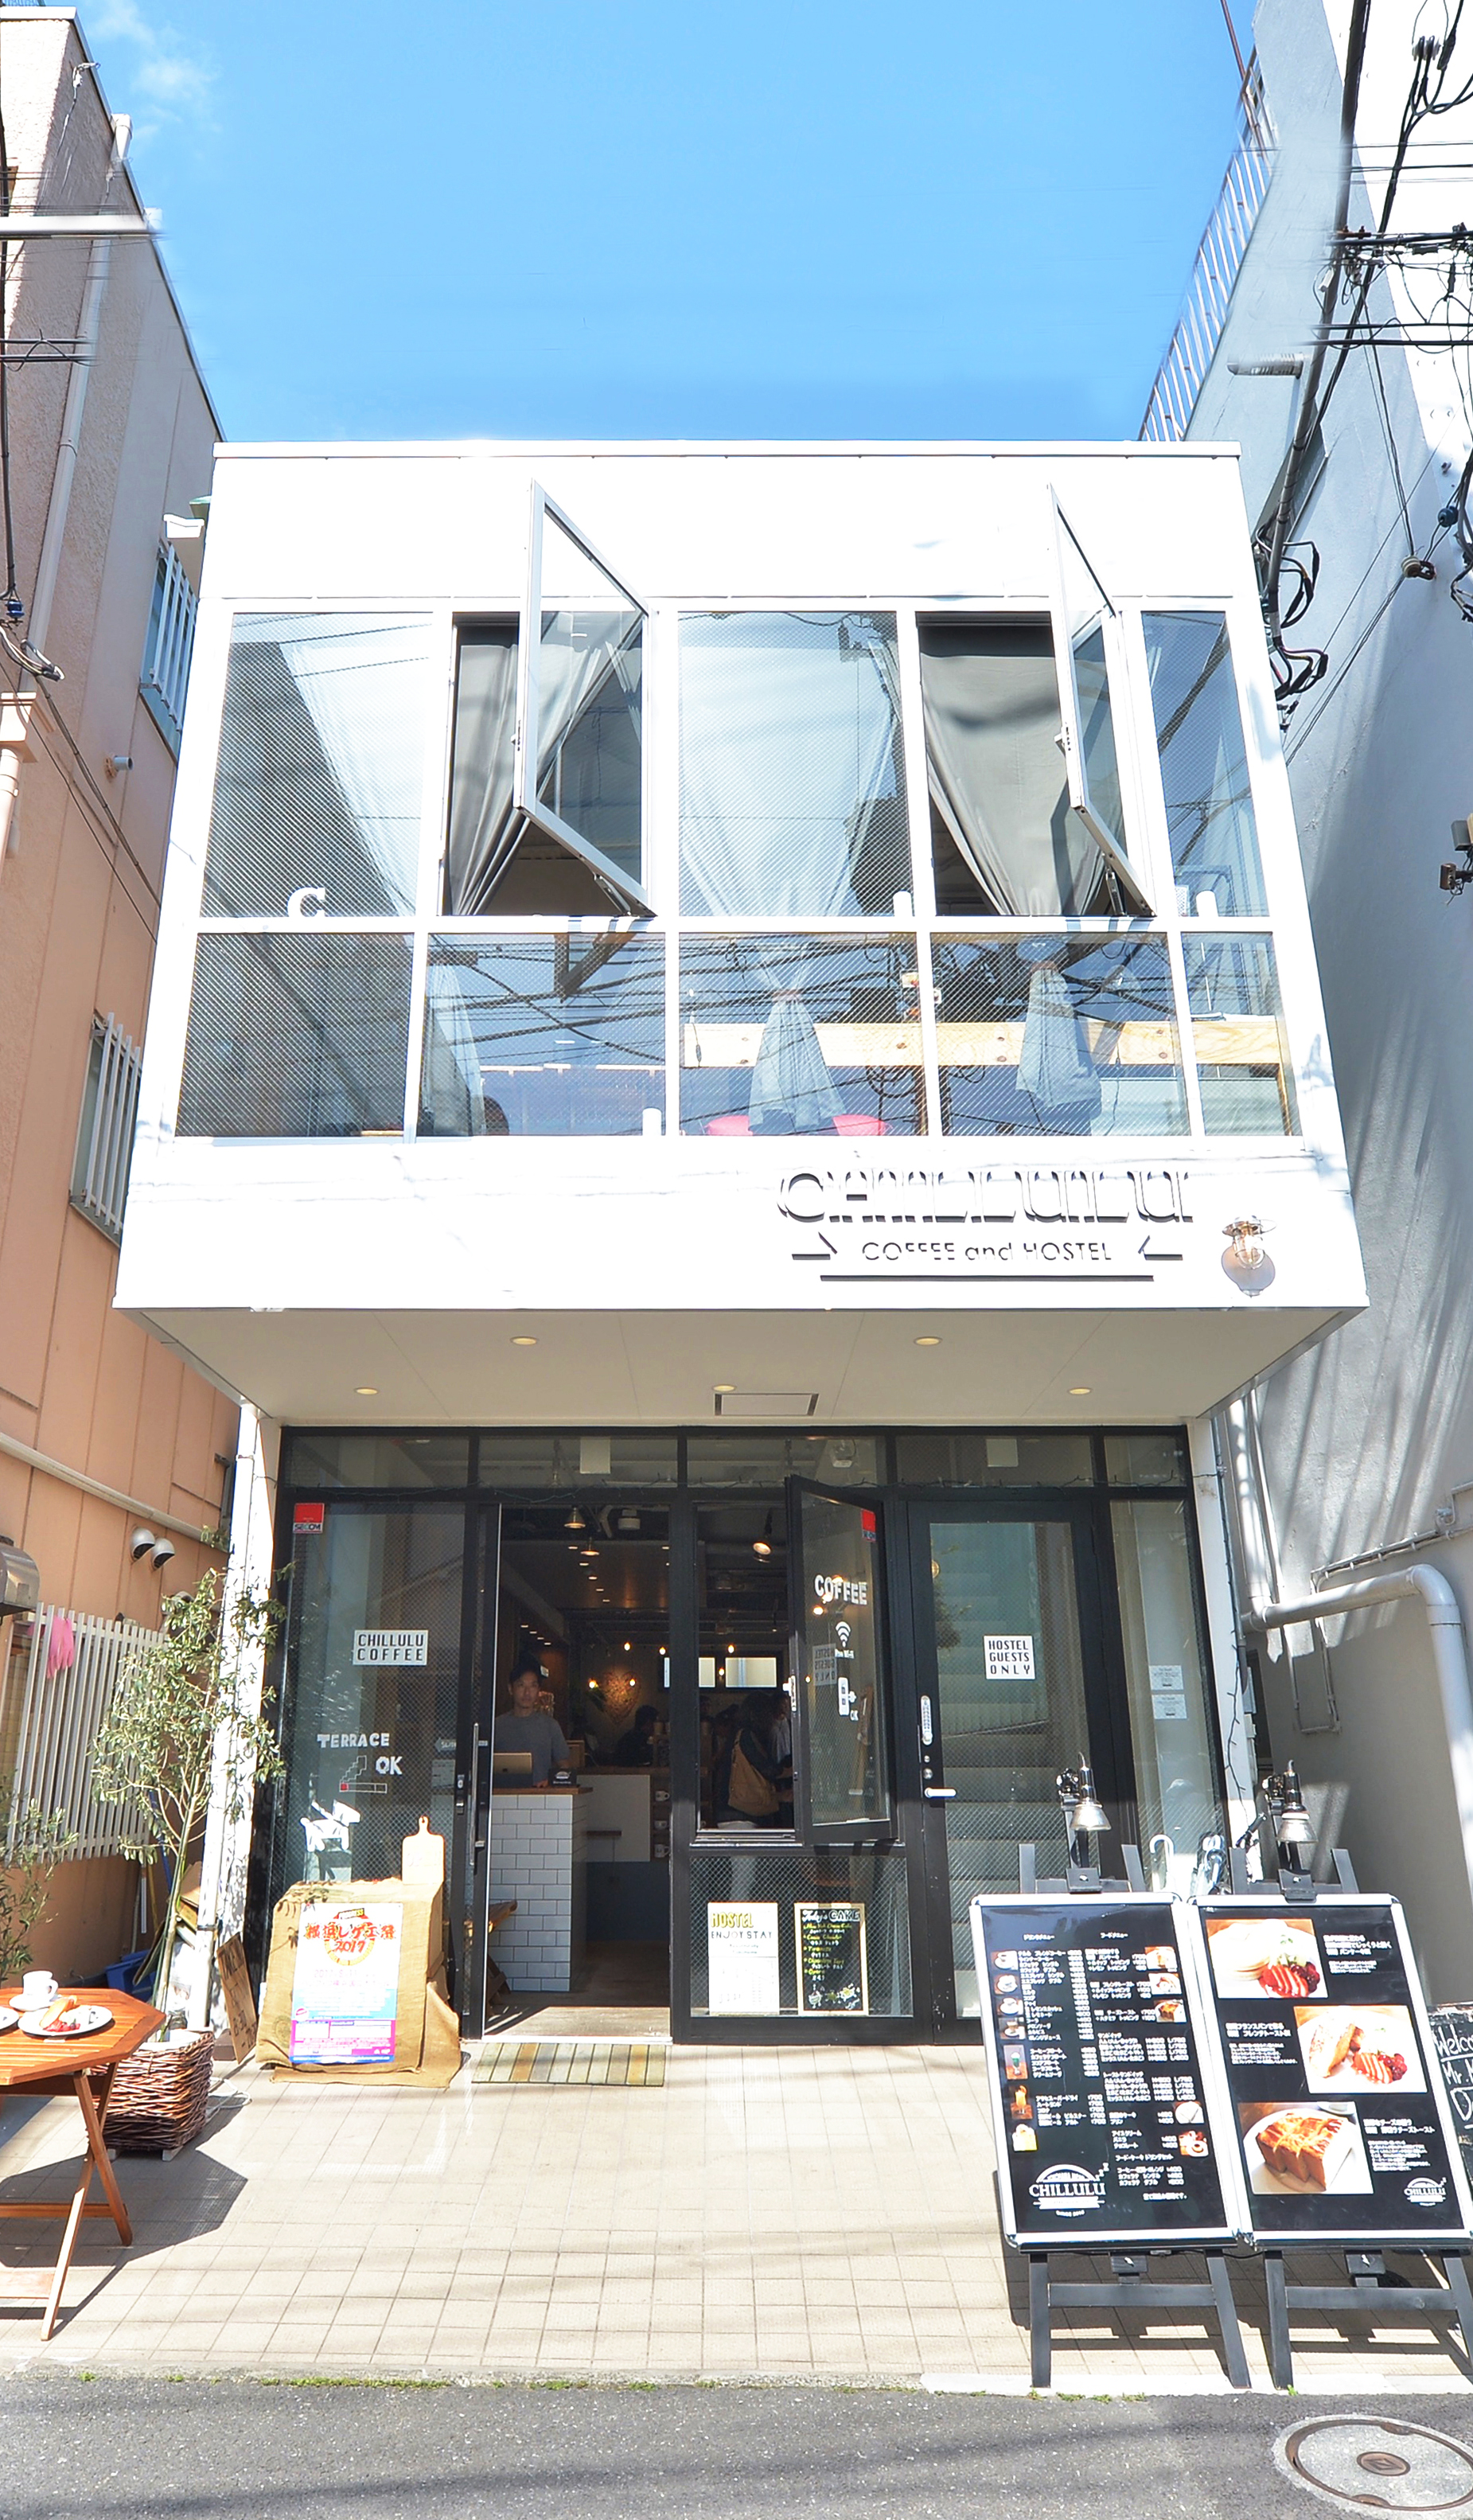 CHILLULU COFFEE AND HOSTELの施設画像